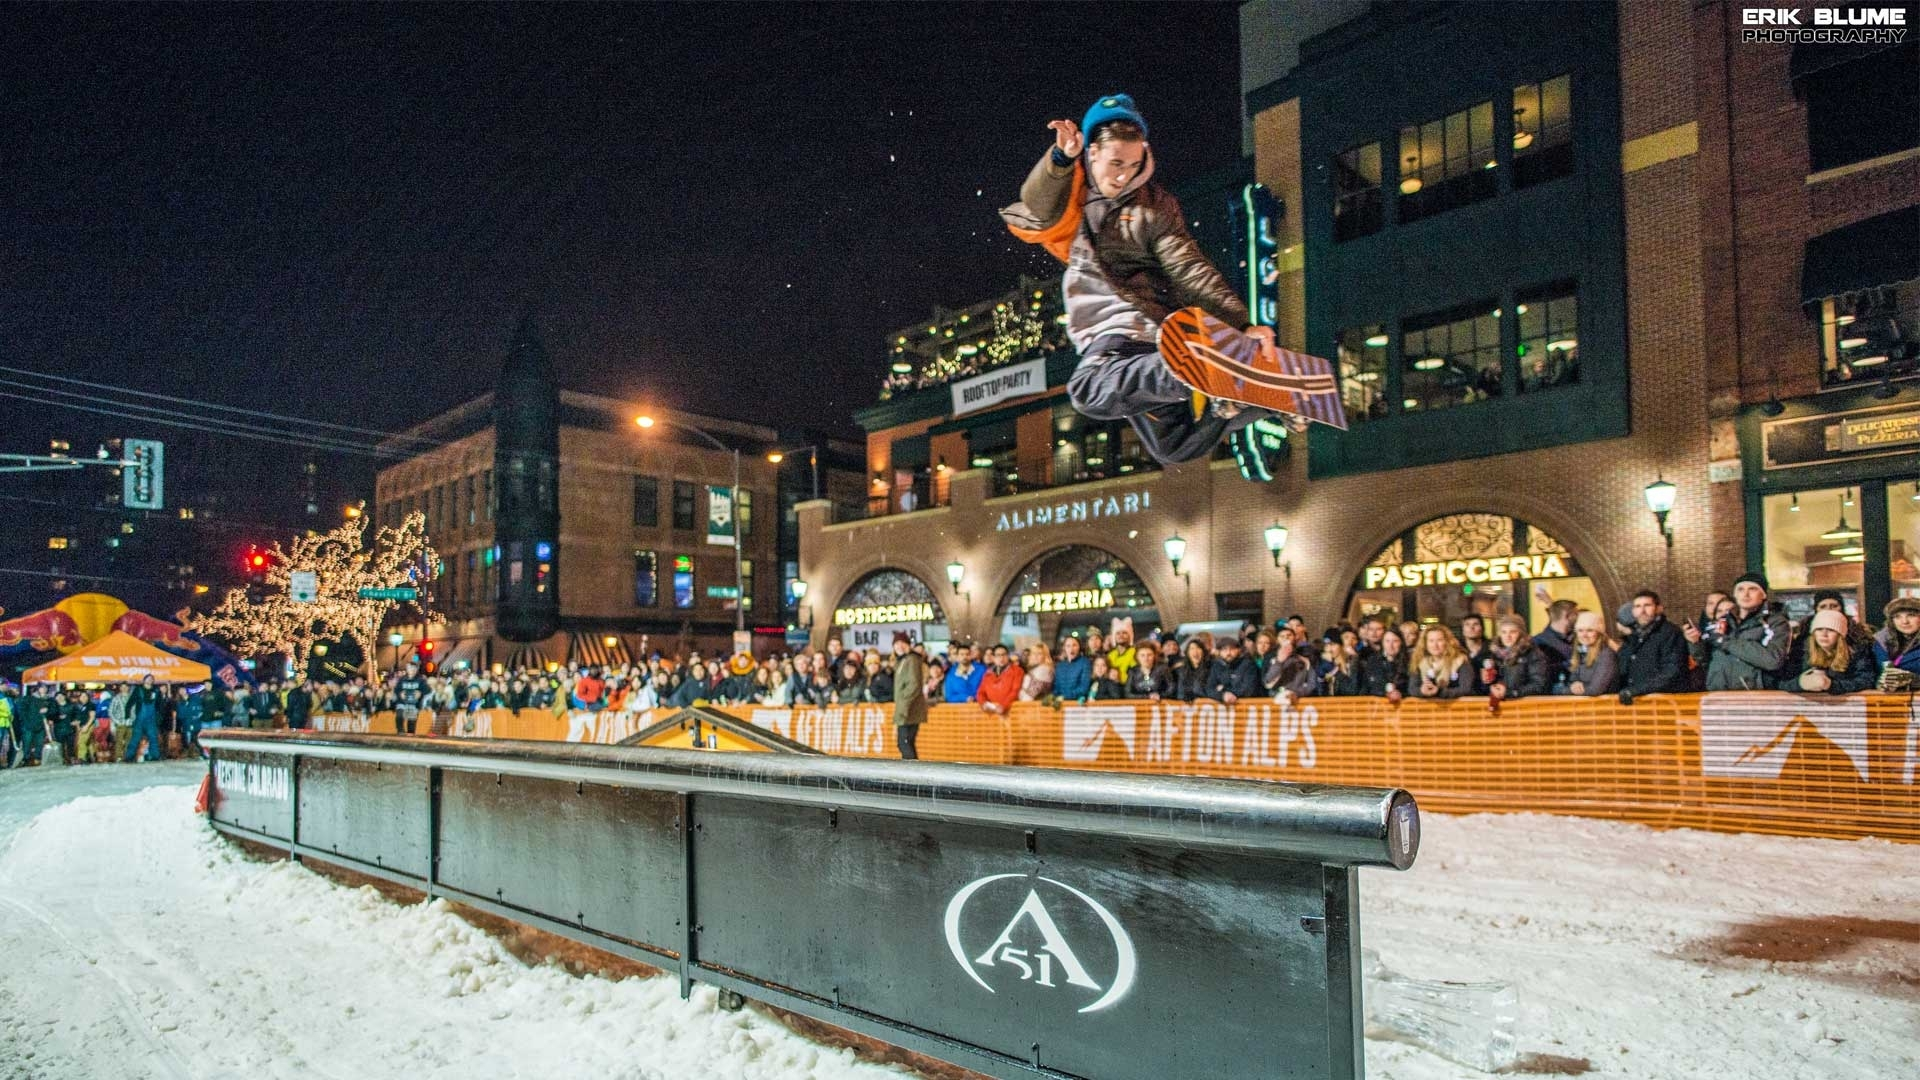 Celebrate the Red Bull Crashed Ice Championships on West 7th at the Crashed Ice Village, February 4, with music, food, drink and performances from Afton Alps athletes.